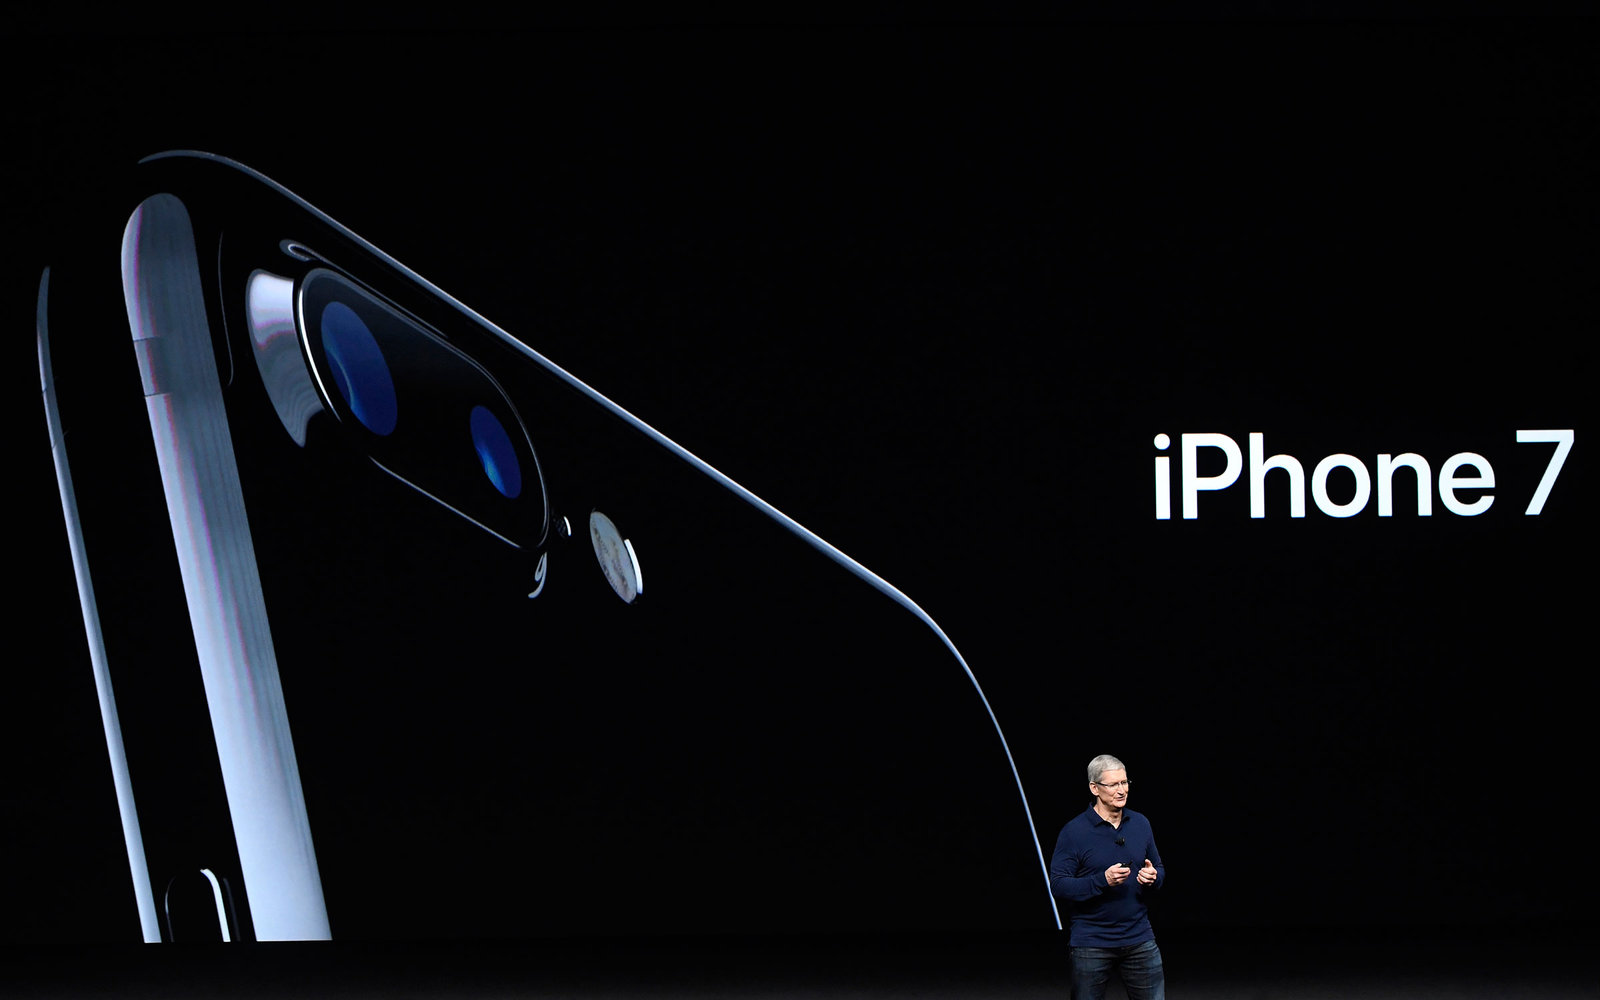 Apple Announces iPhone 7 & New Watch